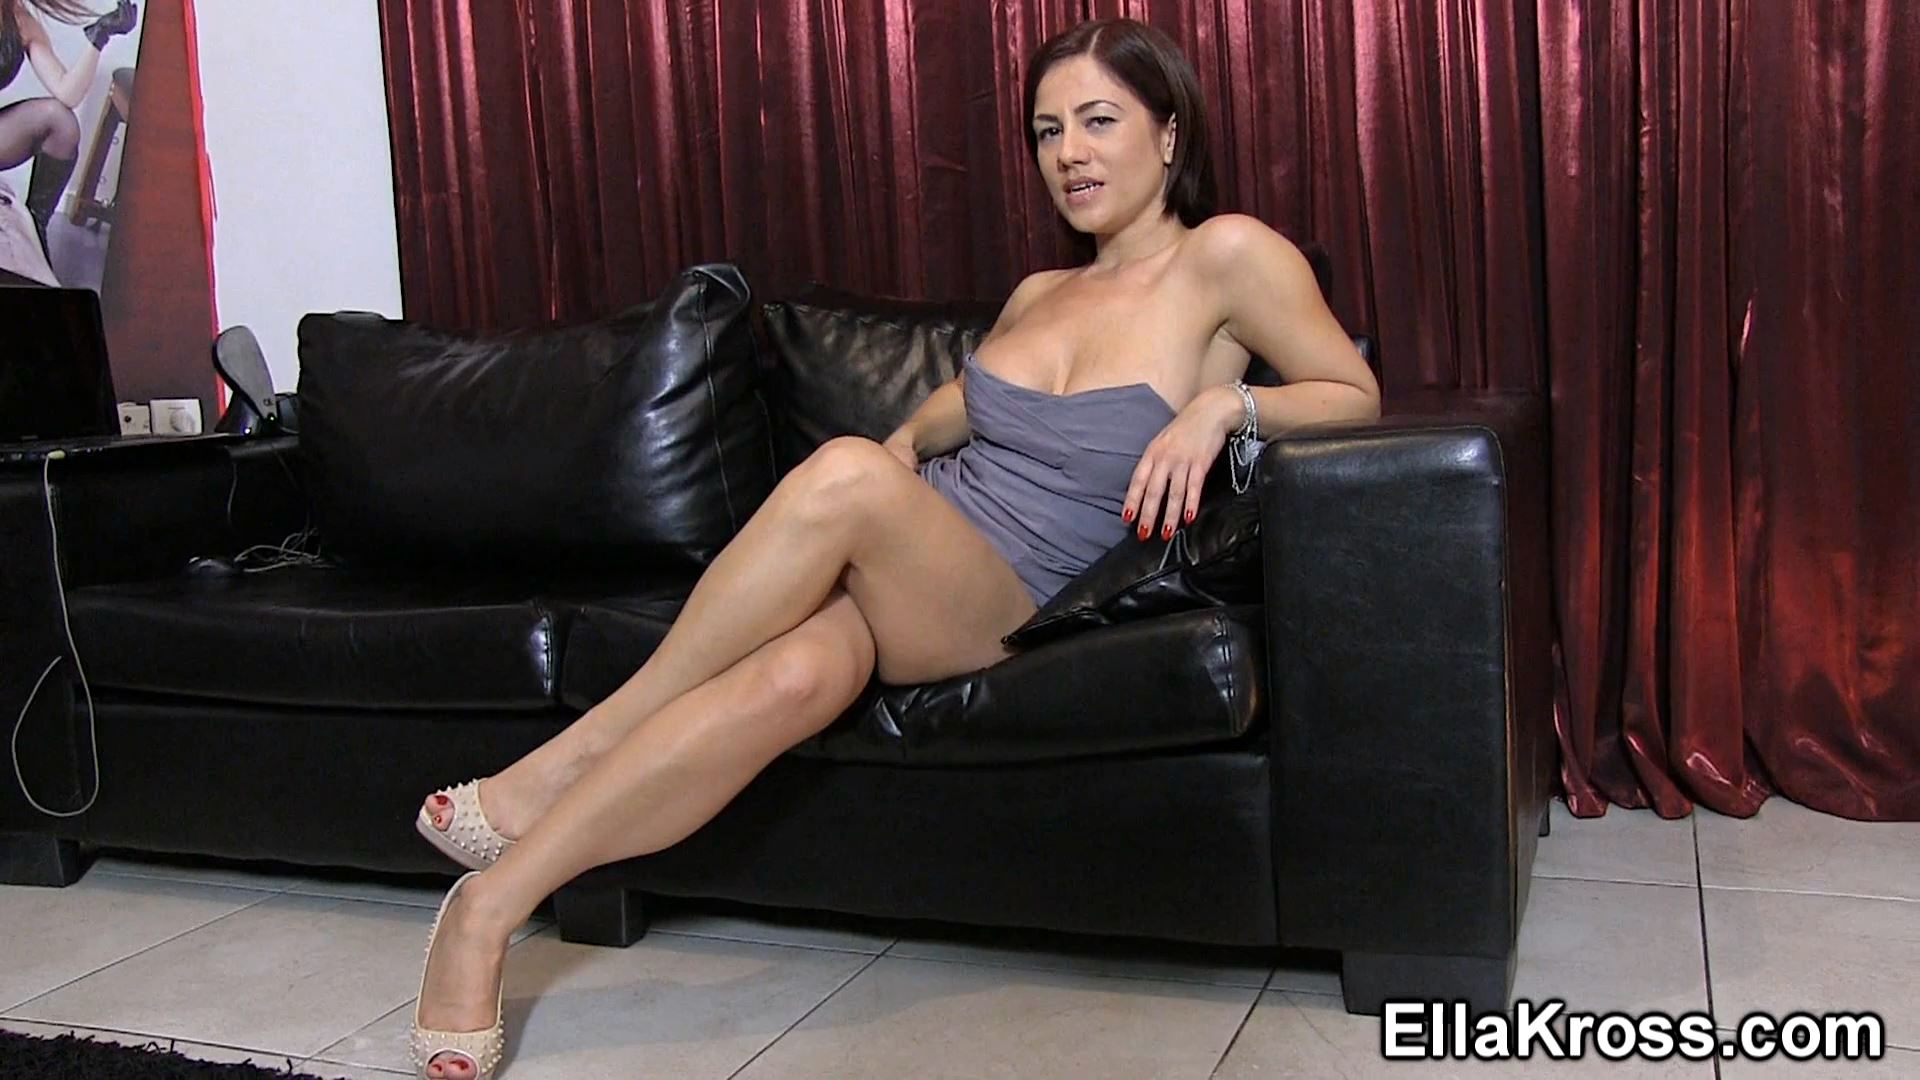 Ella Kross In Scene: Jerk-Off and Eat Your Cum - ELLAKROSS - FULL HD/1080p/MP4